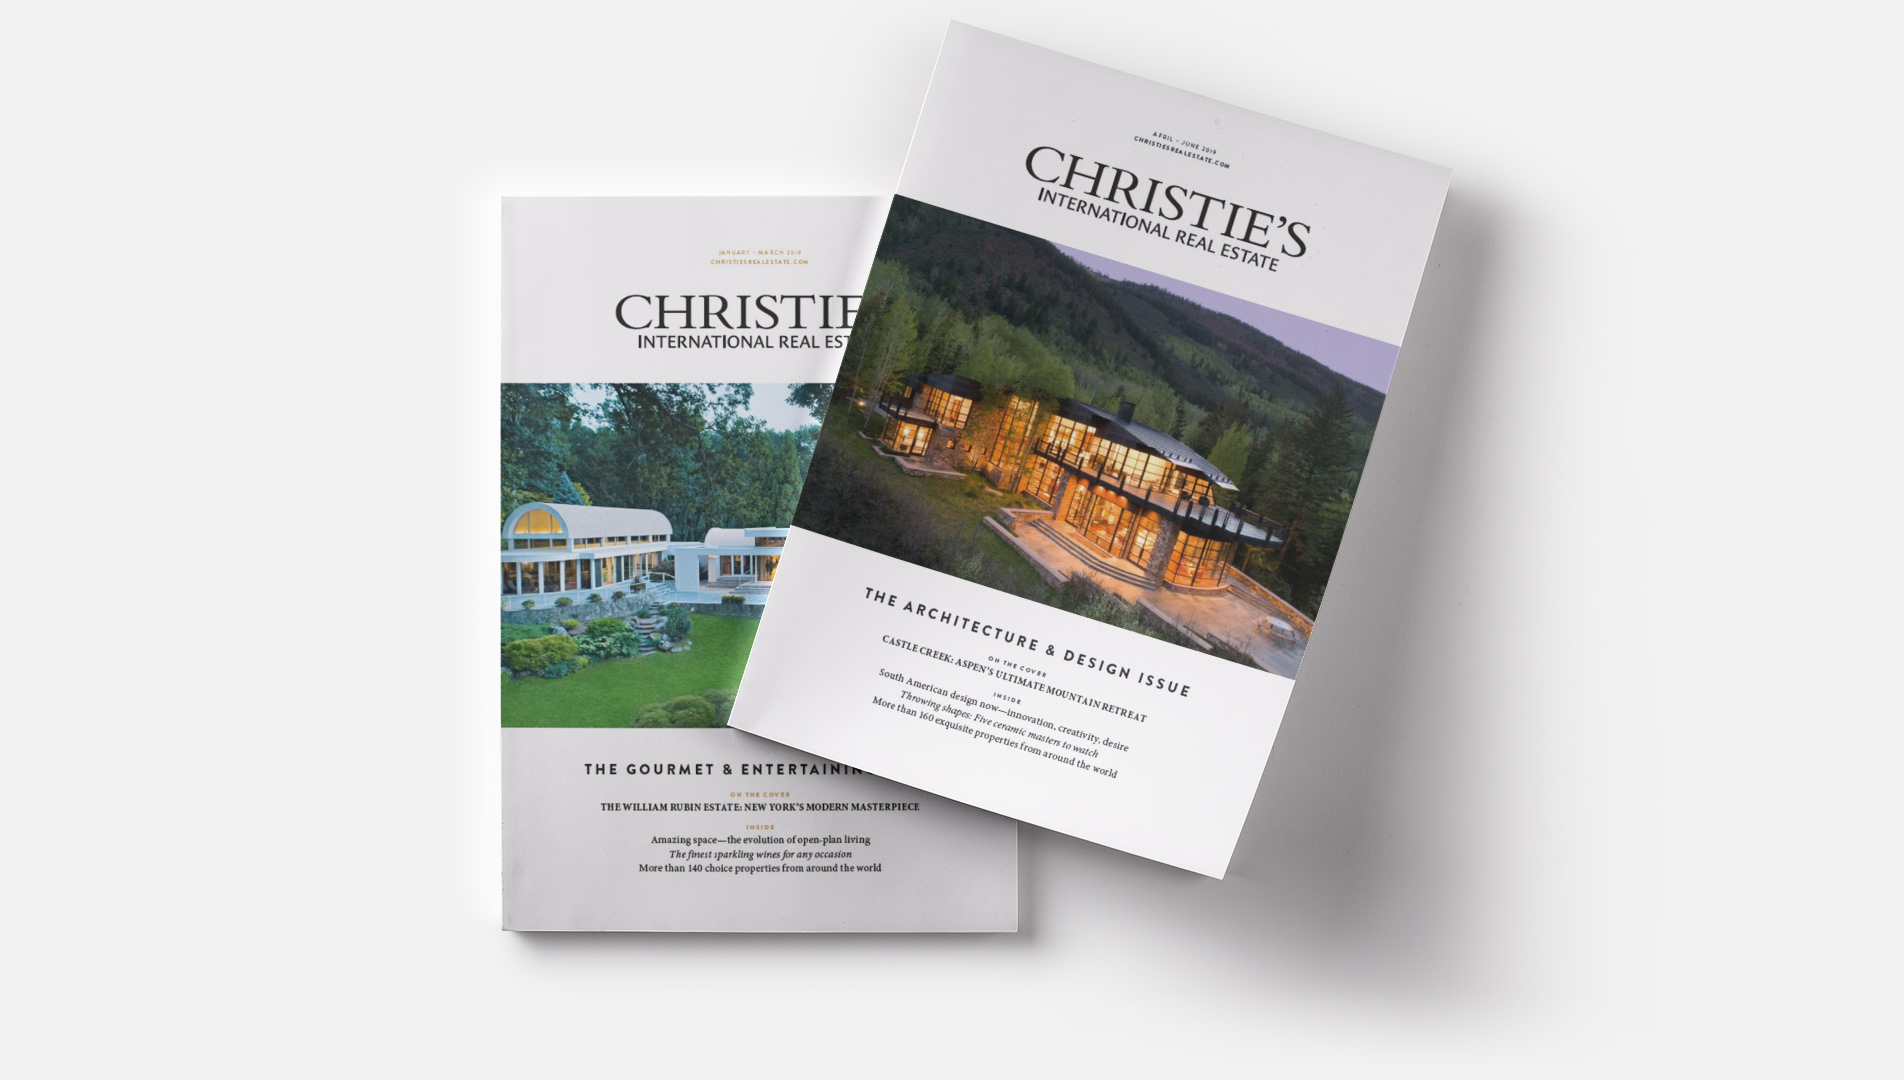 Christie's International Real Estate Magazines